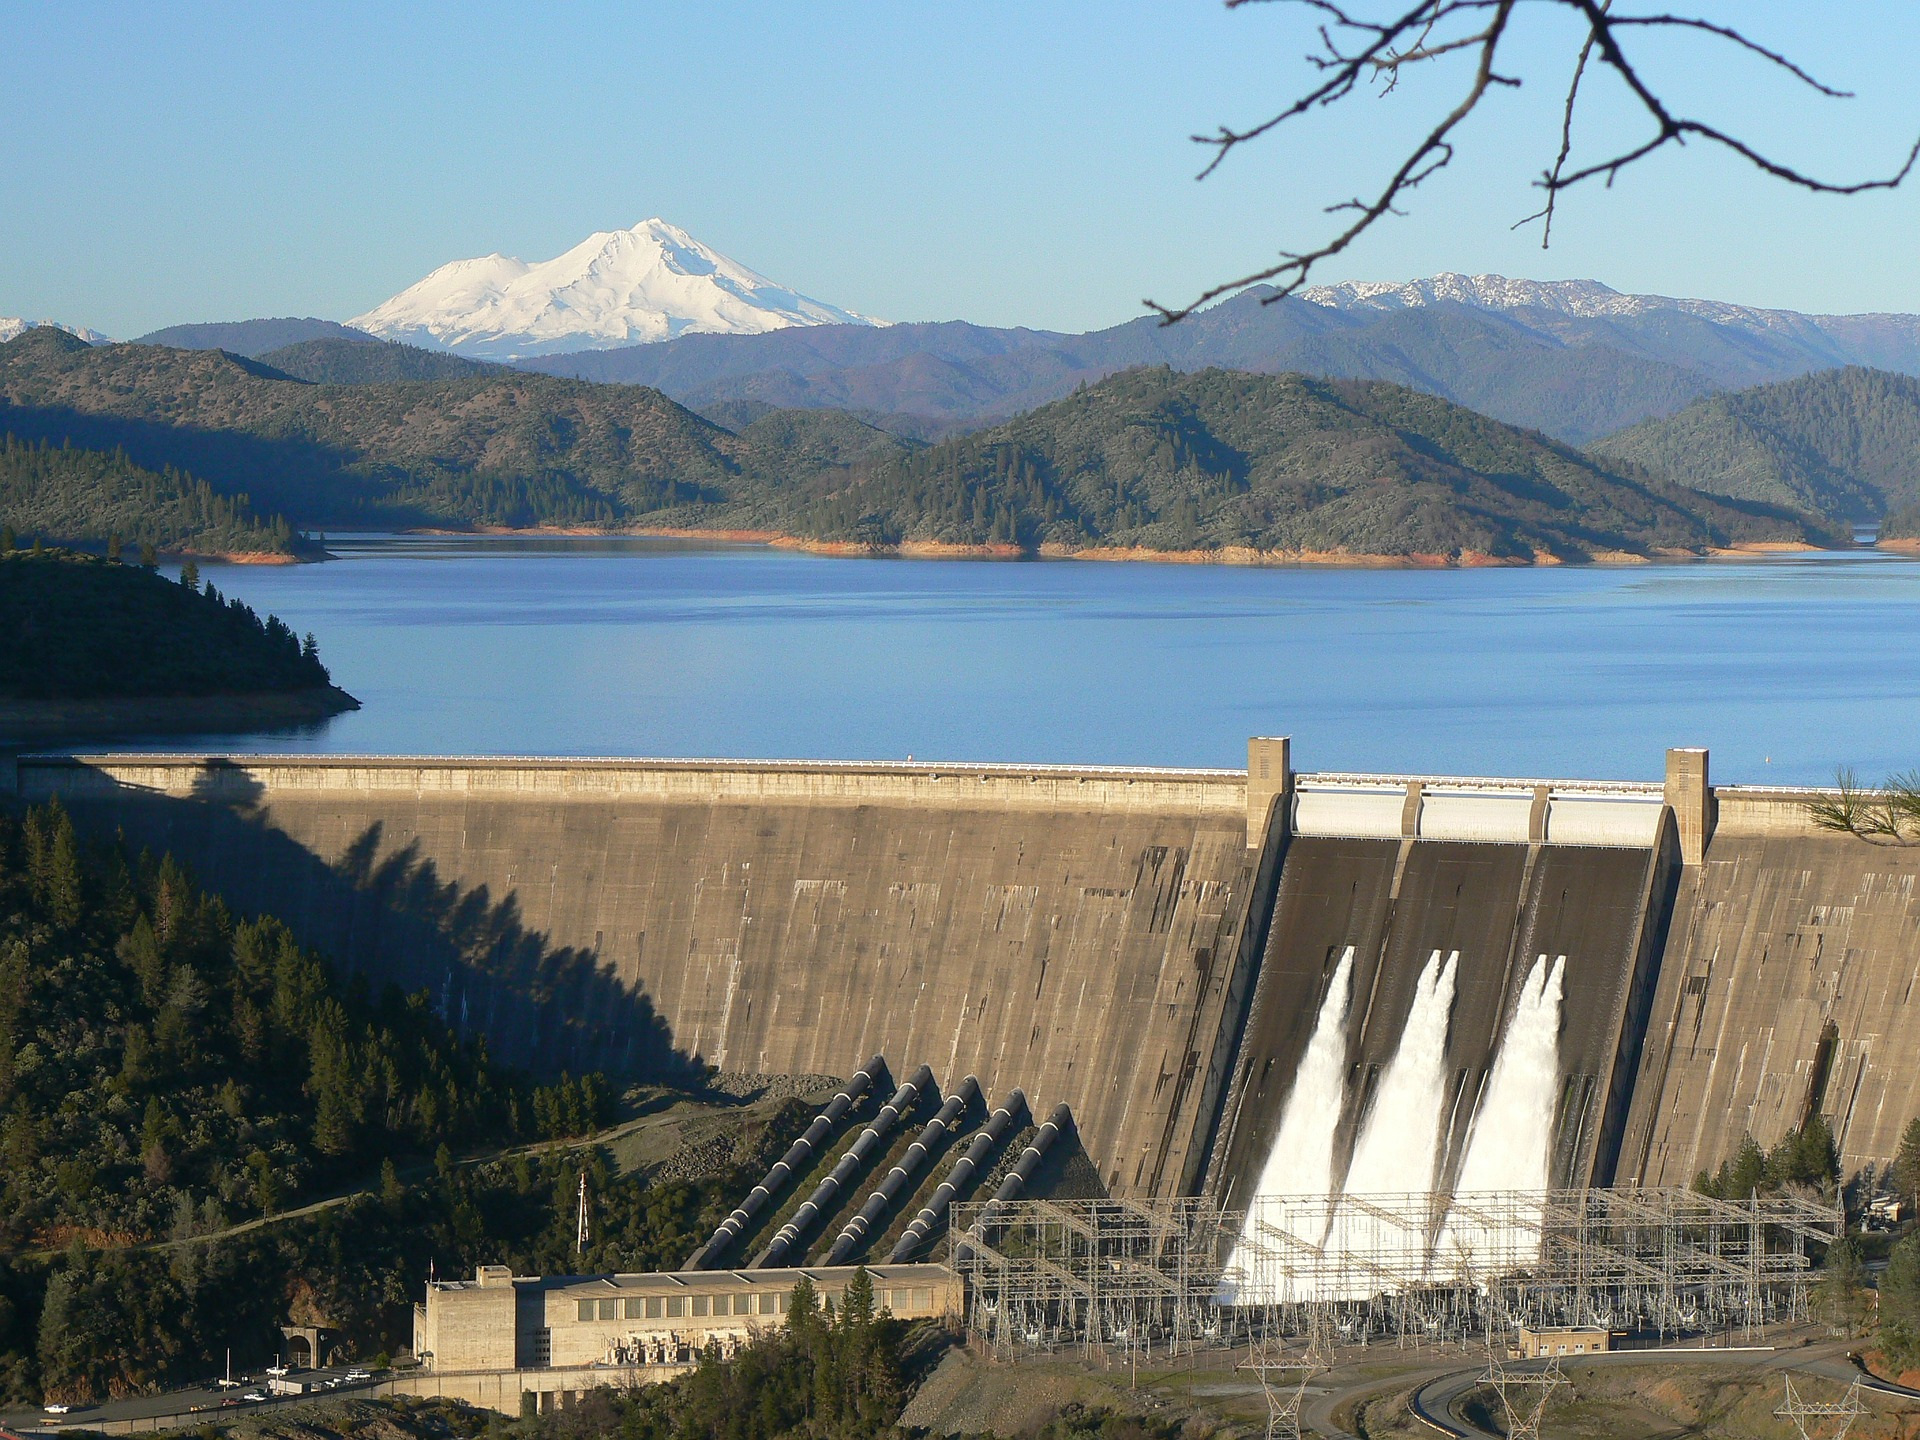 Ac guide services lake shasta fishing guide ac guide for Lake shasta fishing